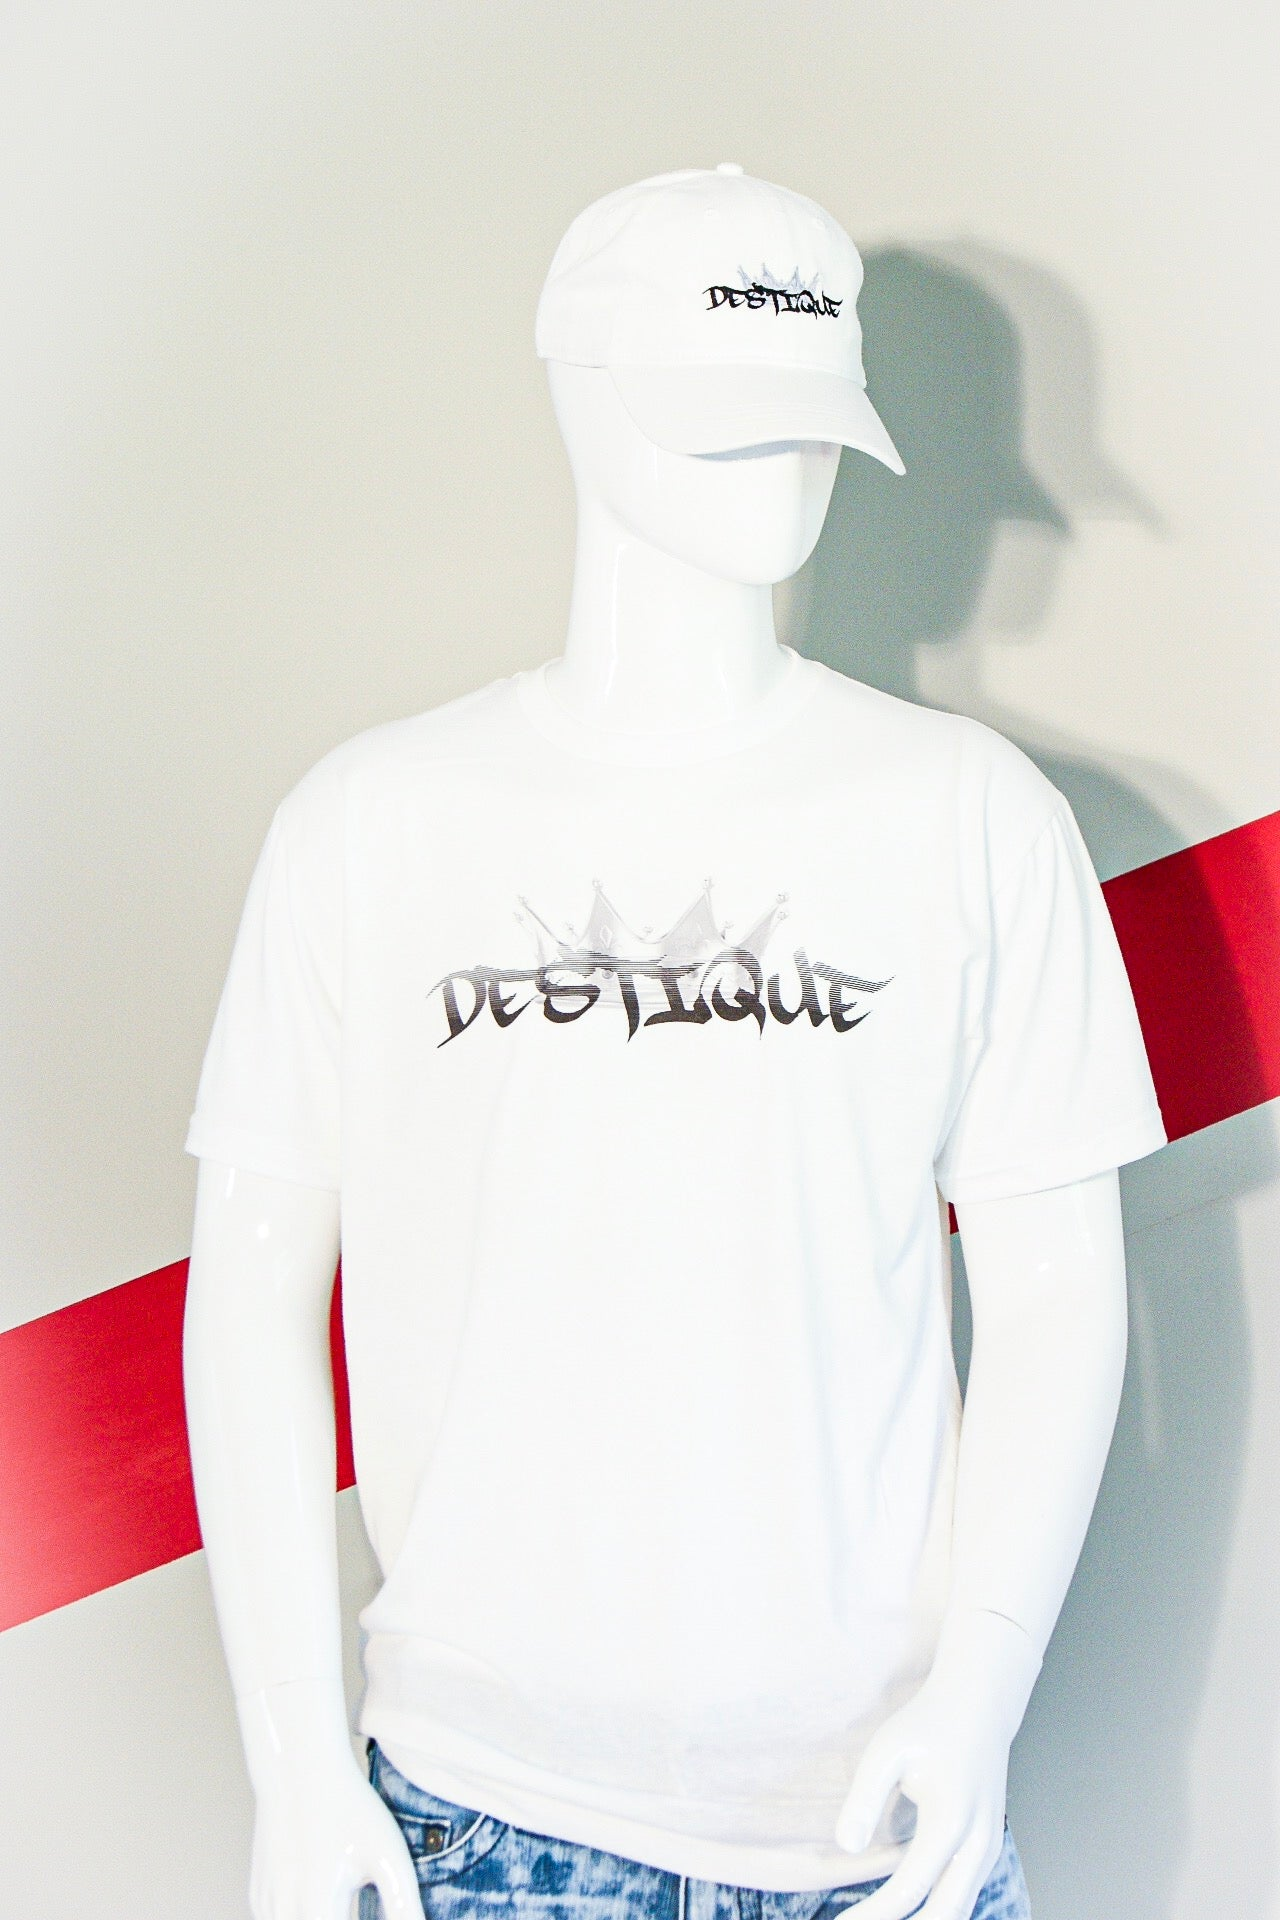 Destique White Logo Tee